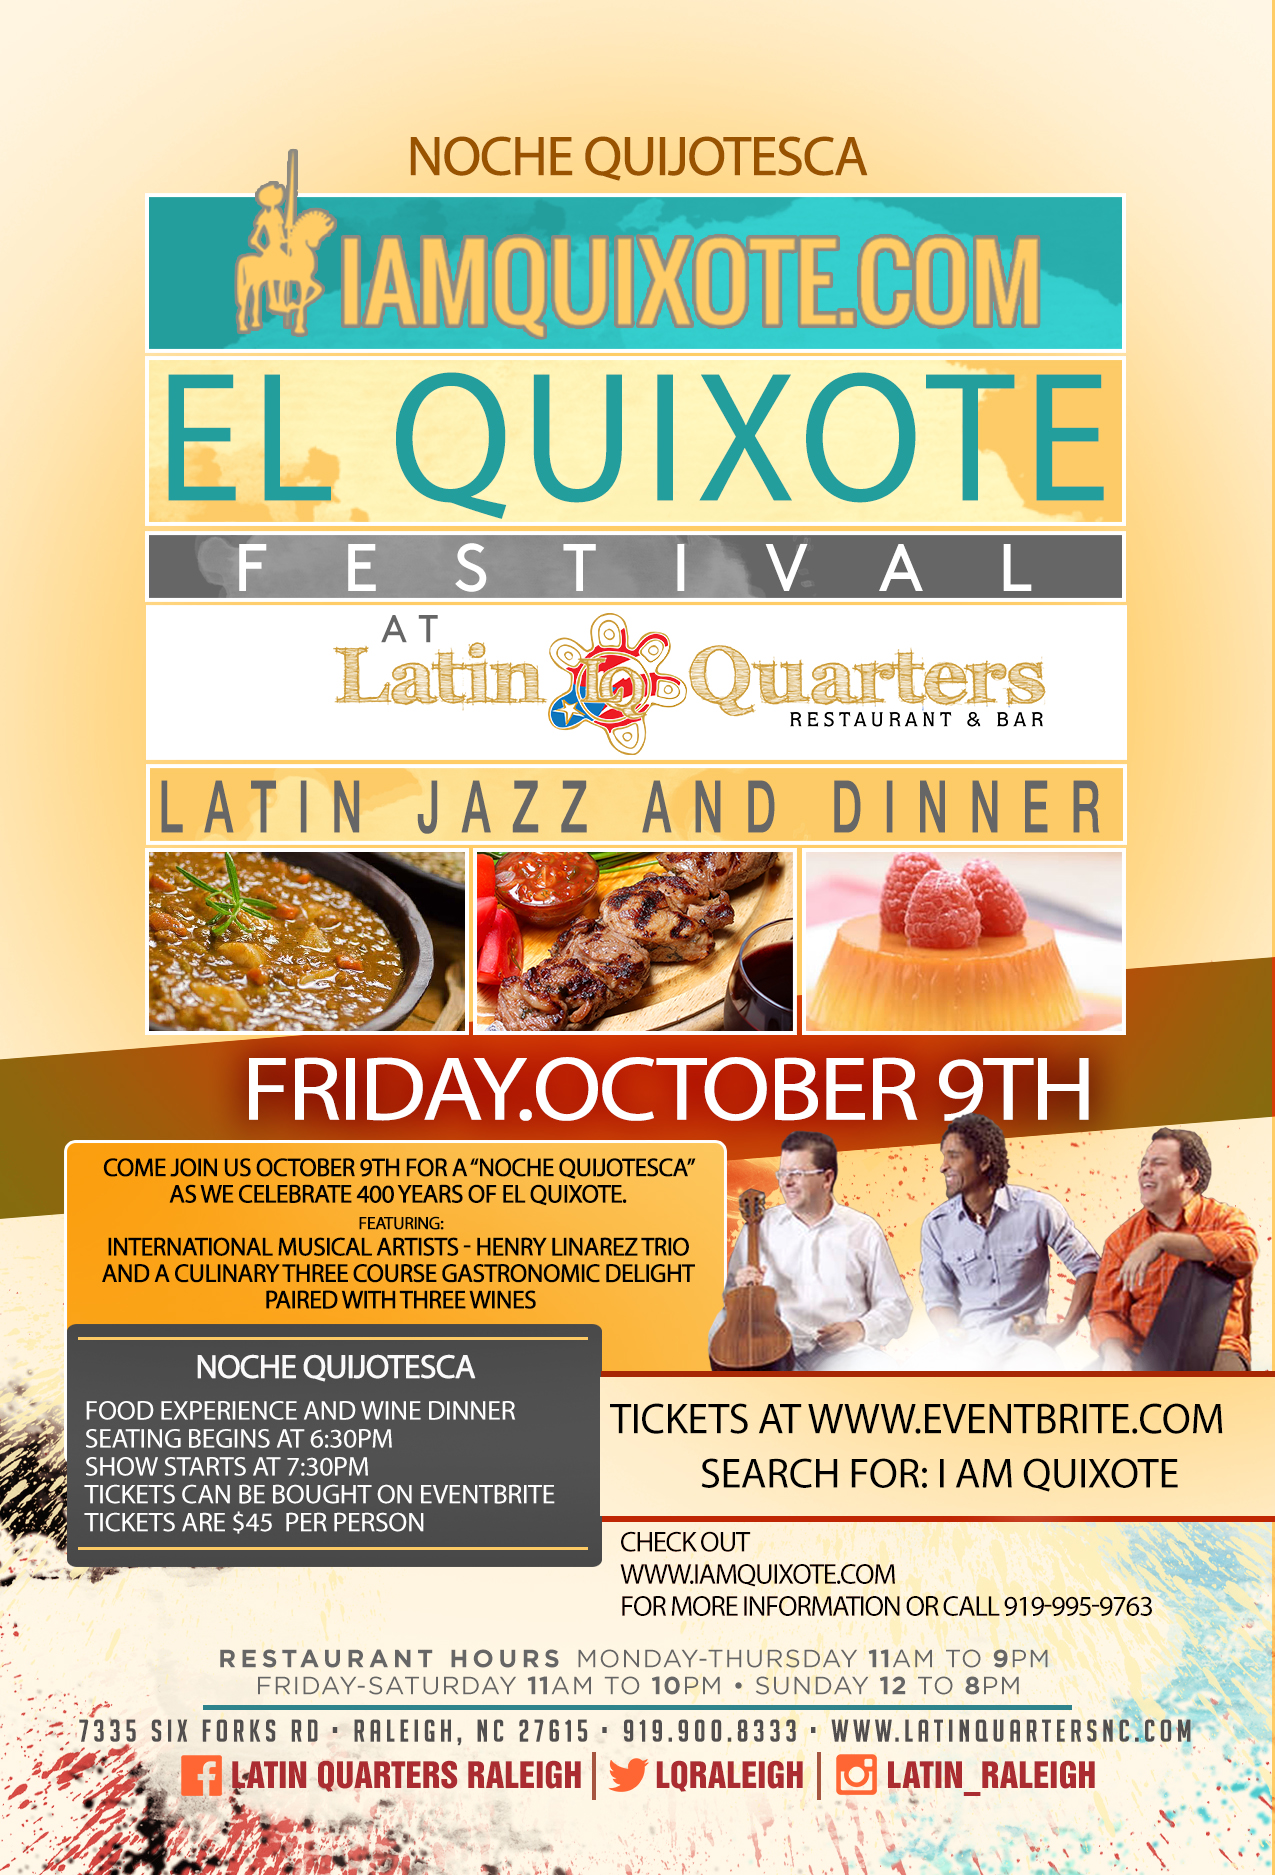 NOCHE QUIJOTESCA – CULINARY DELIGHT AND LIVE MUSIC - EL QUIXOTE FESTIVAL - OCT 9TH 2015